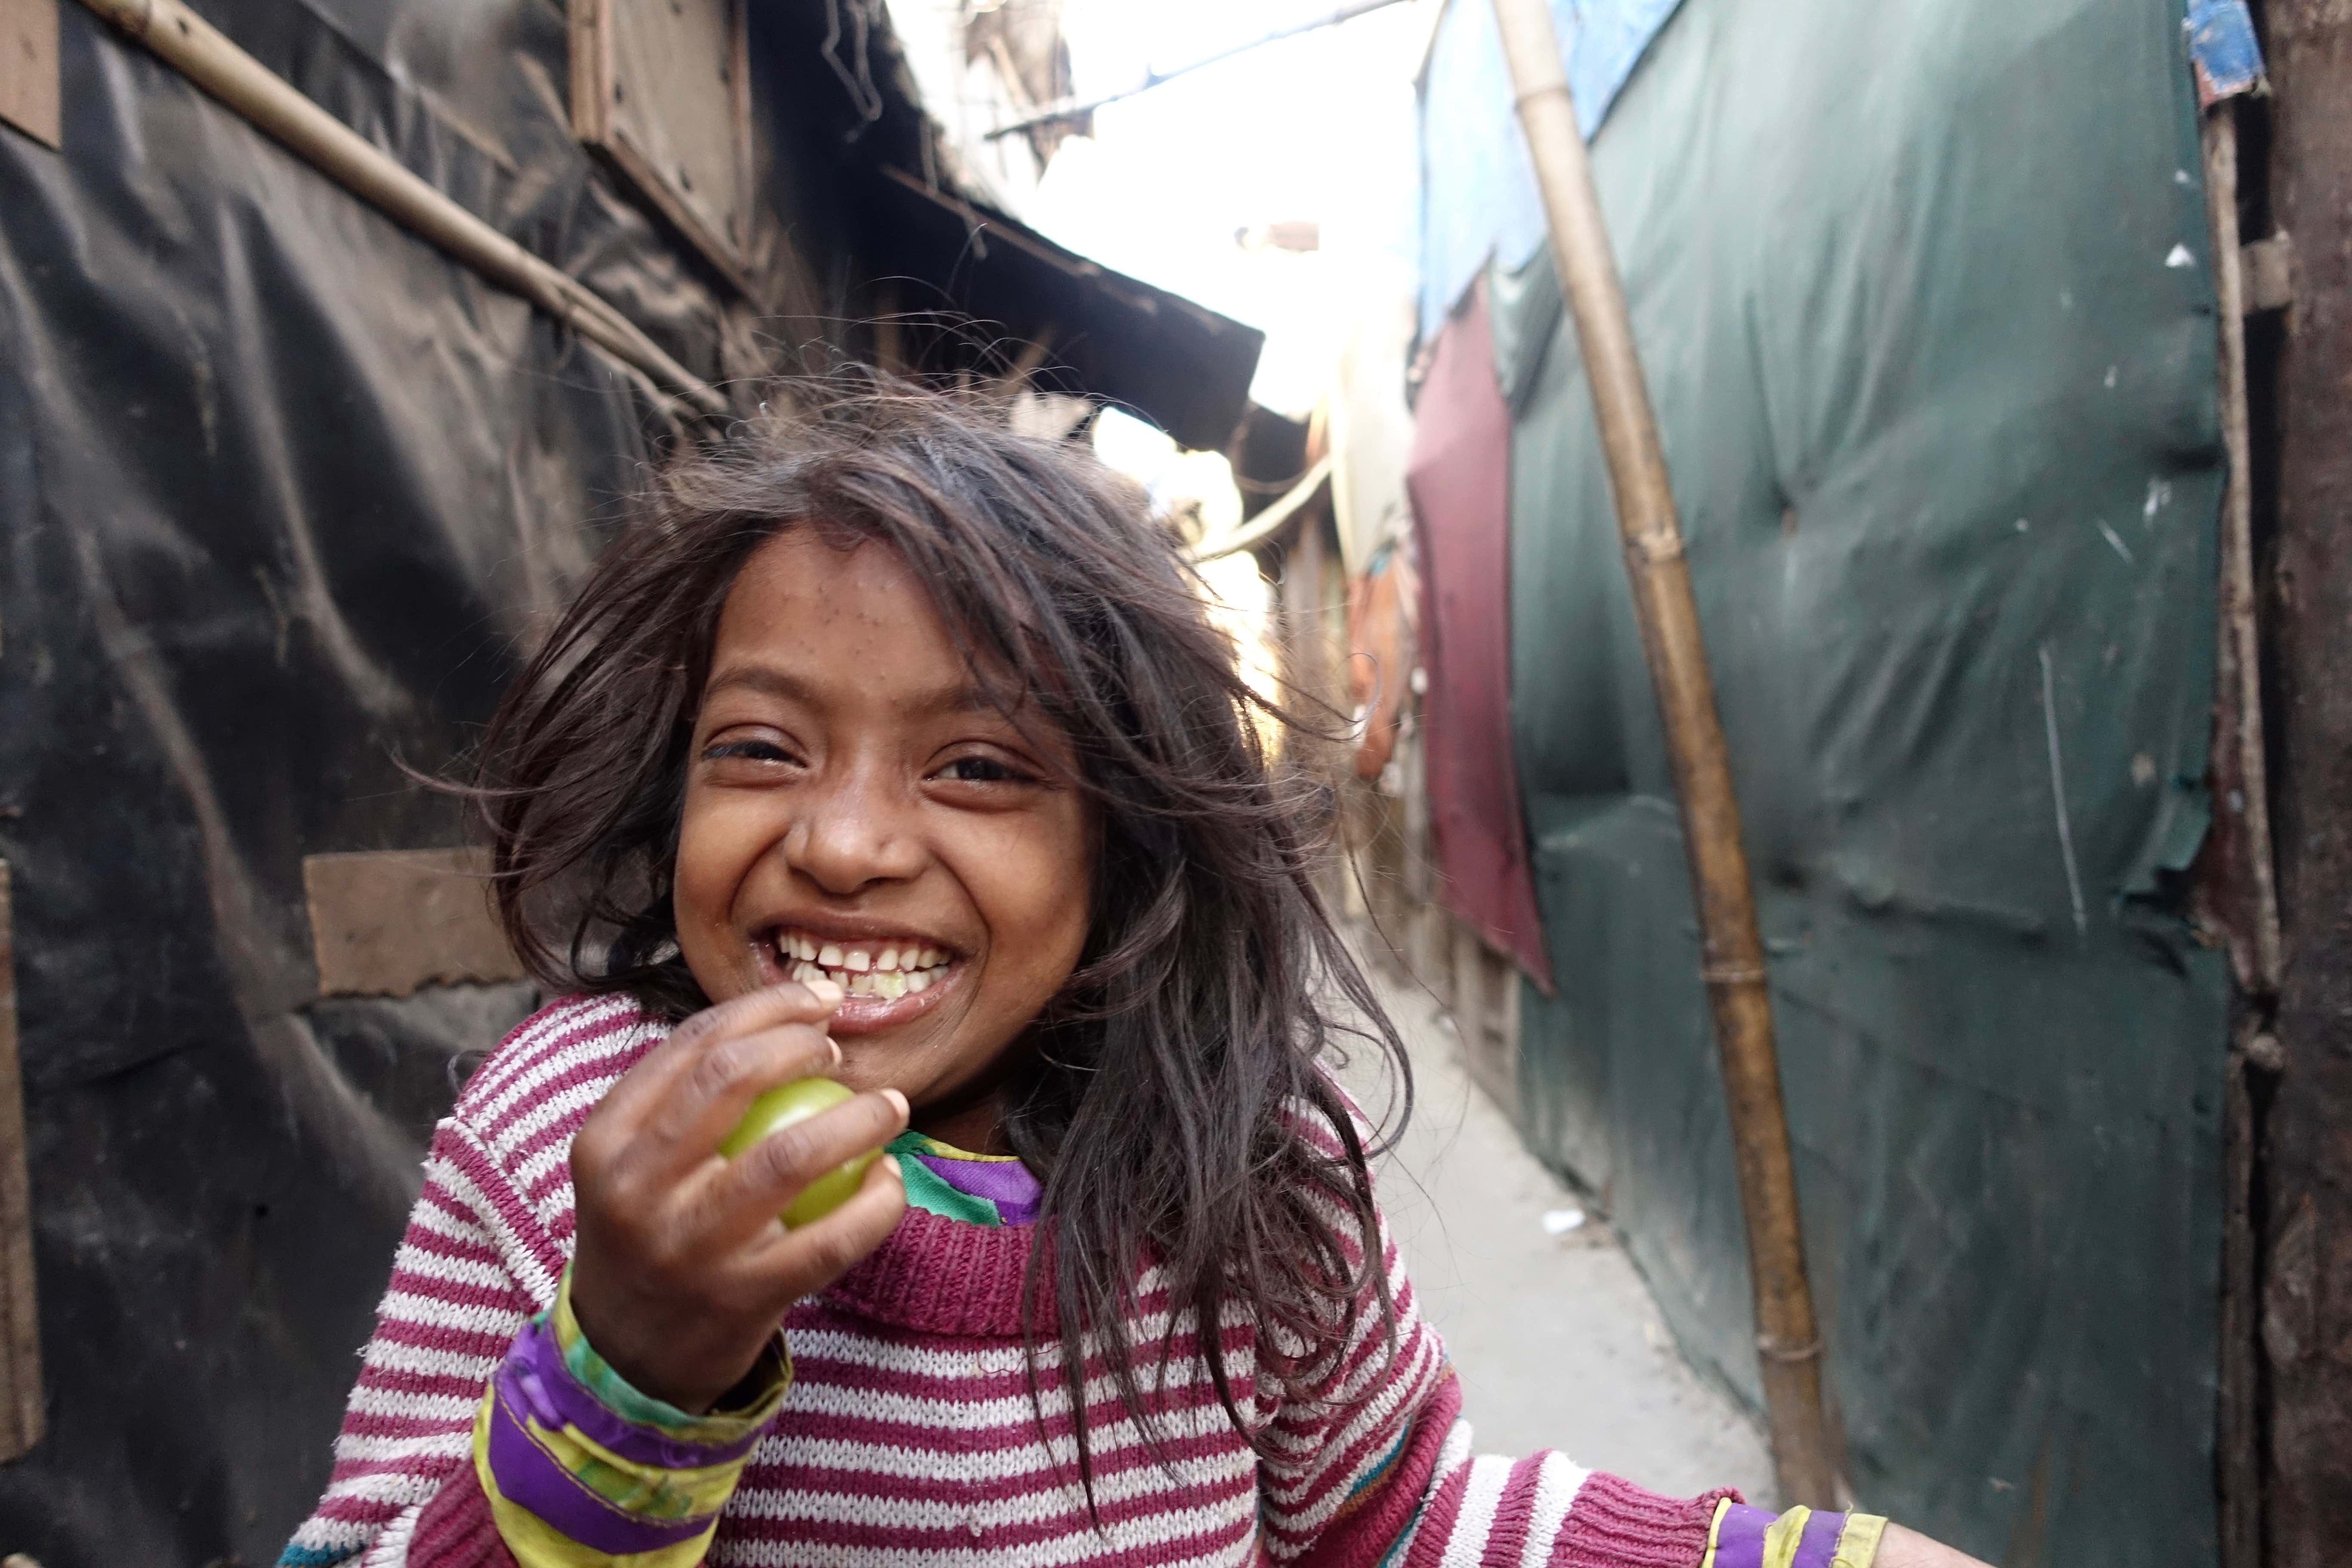 A young girl smiles at the camera. The space between the huts in Kalindi Kunj is narrow and a popular place for the kids to play chase. Credit: Bill Drexel.